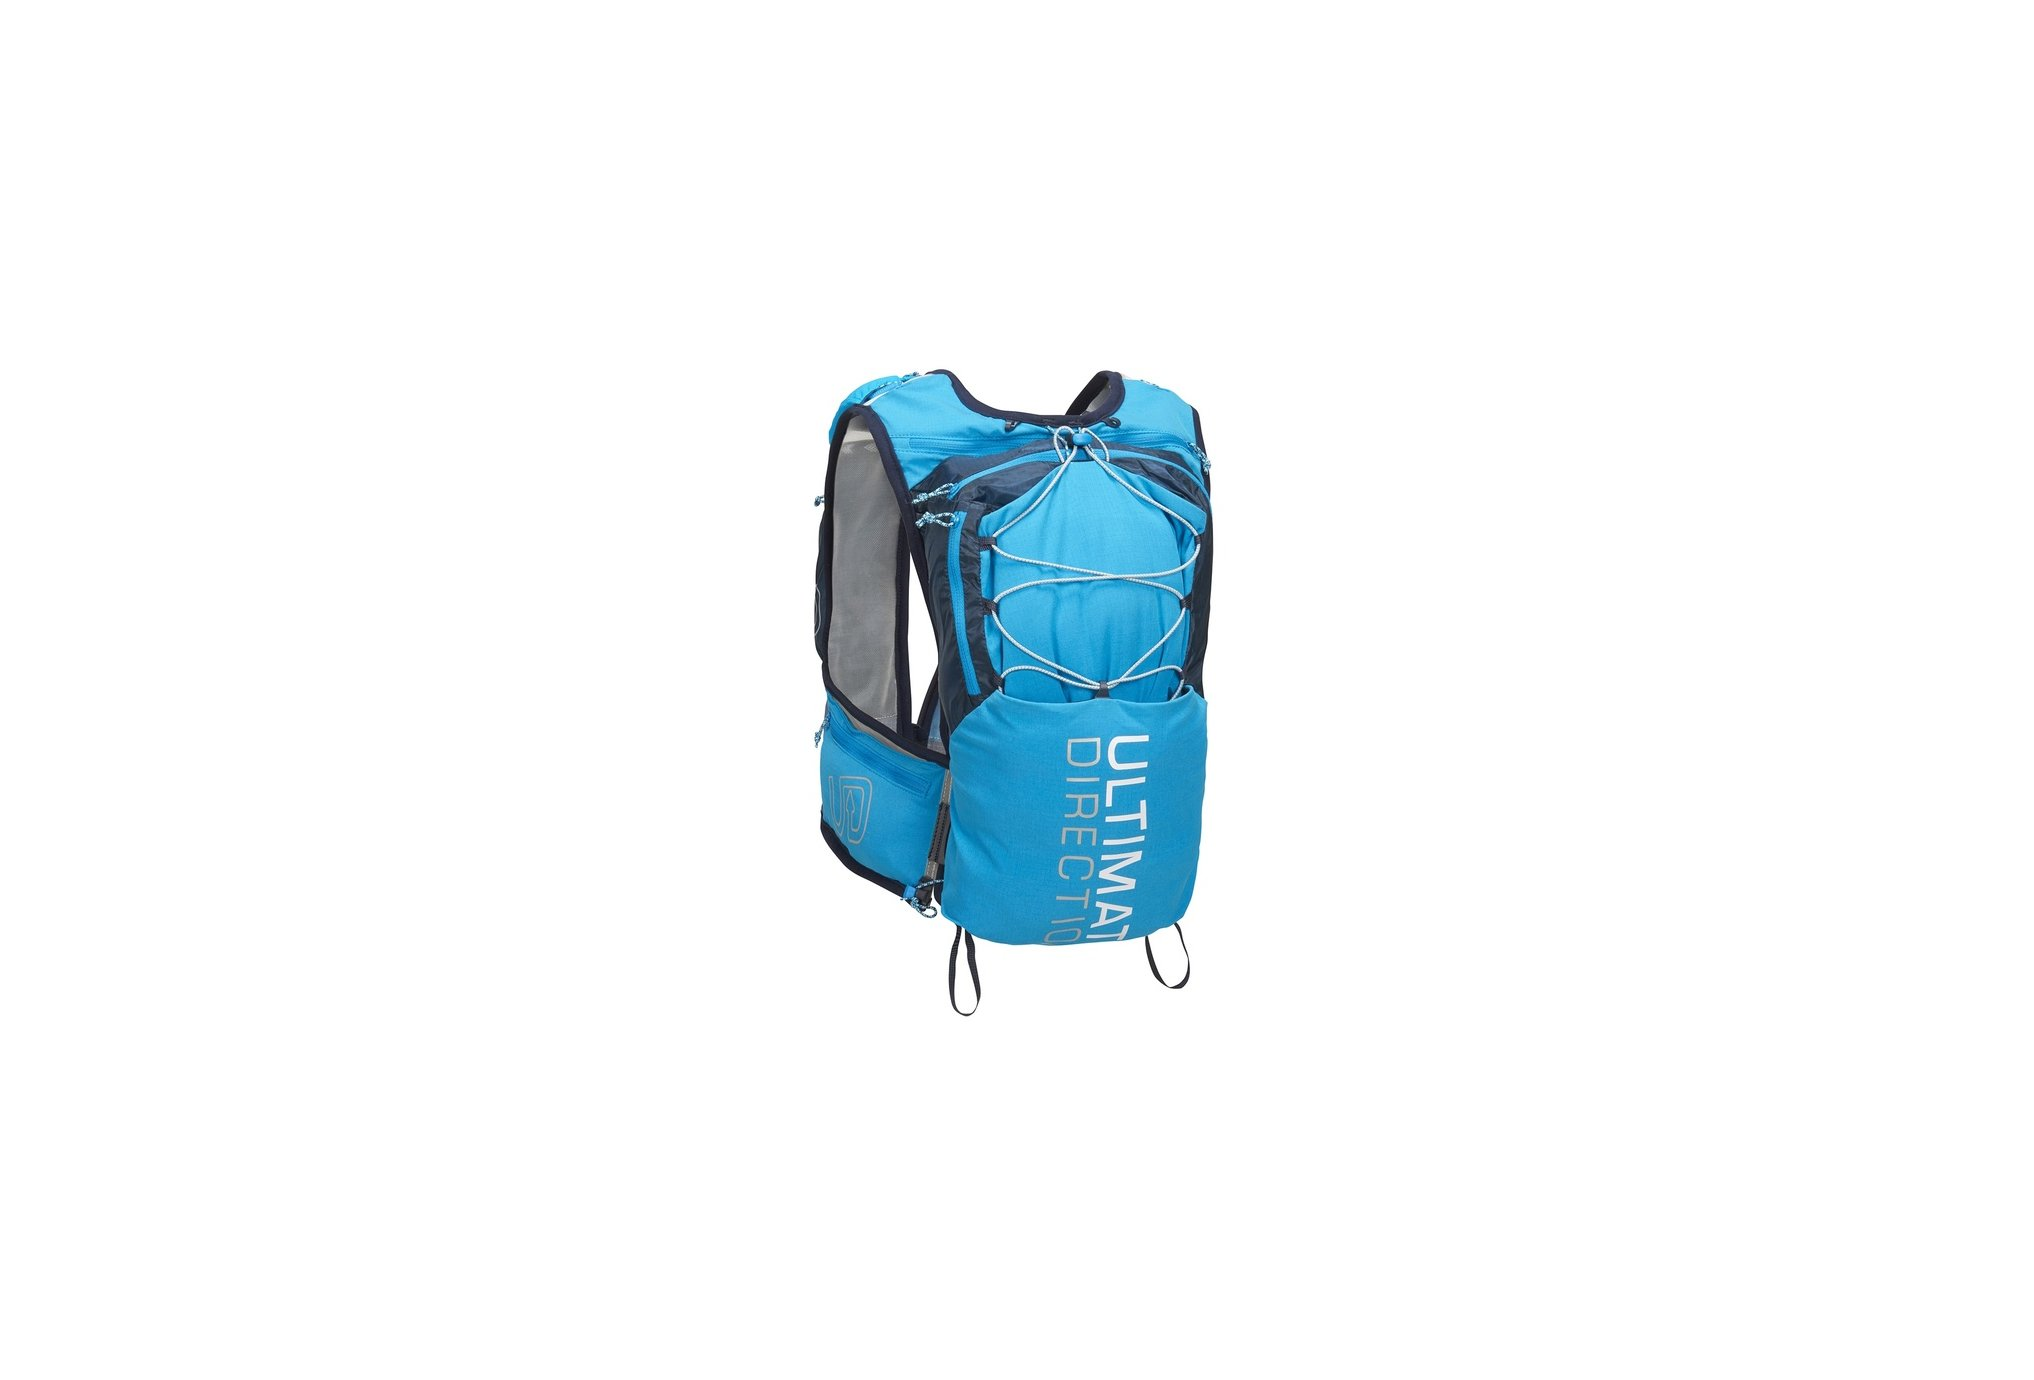 Ultimate Direction Adventure Vest 4.0 Sac hydratation / Gourde